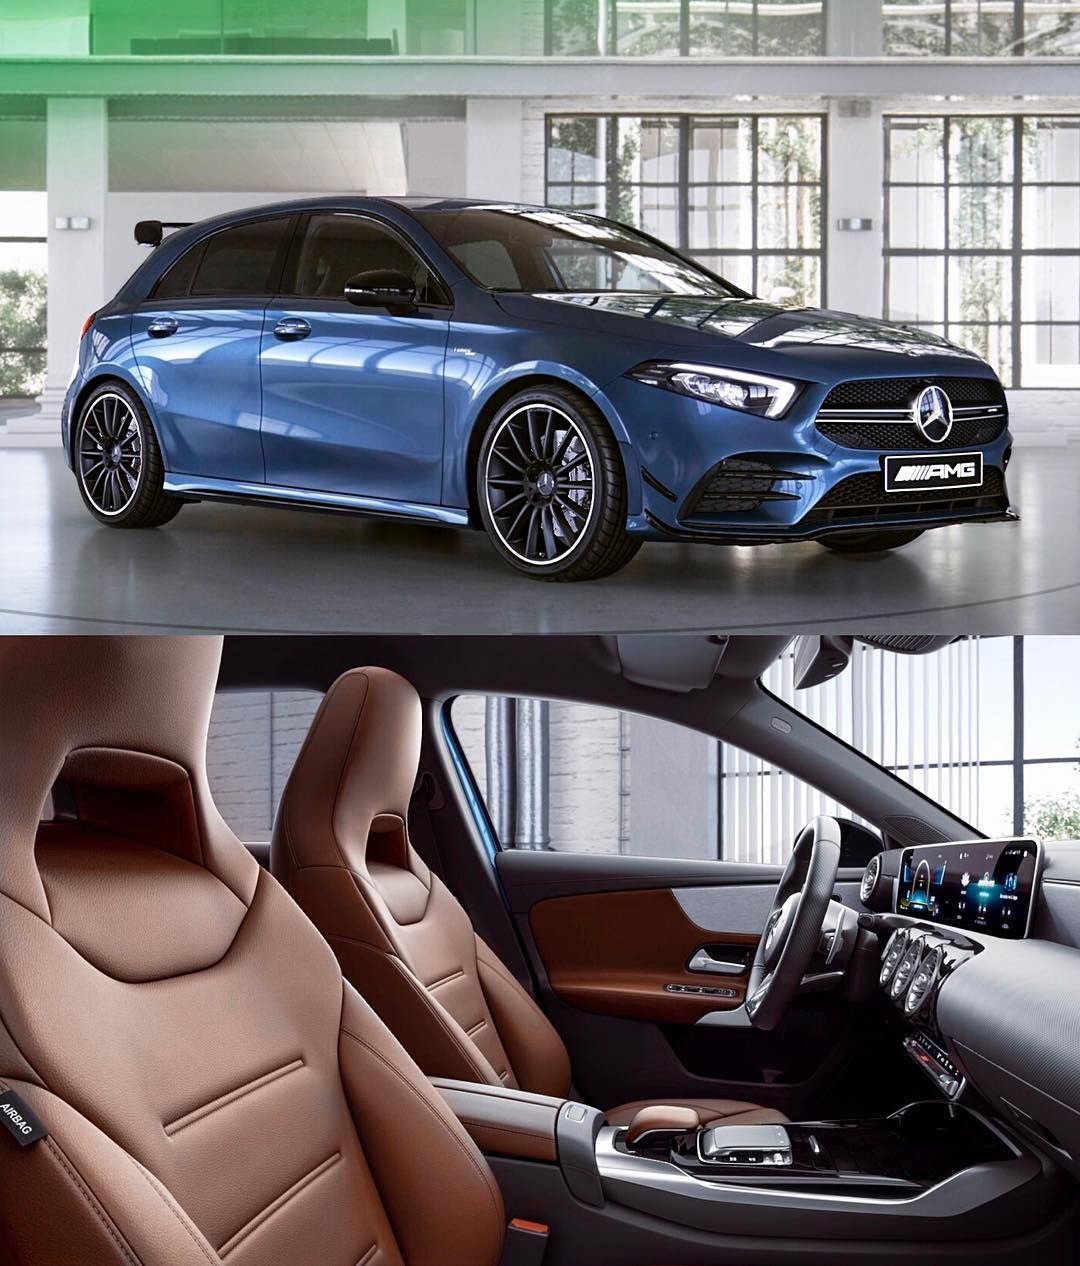 Mercedes Amg A35 Only The A220 Sedan Is U S Bound In Early 2019 Raziz Roken Rehan Mr Amg On Instagram Okay Guys Think I Ve Managed To Twist Dad S A